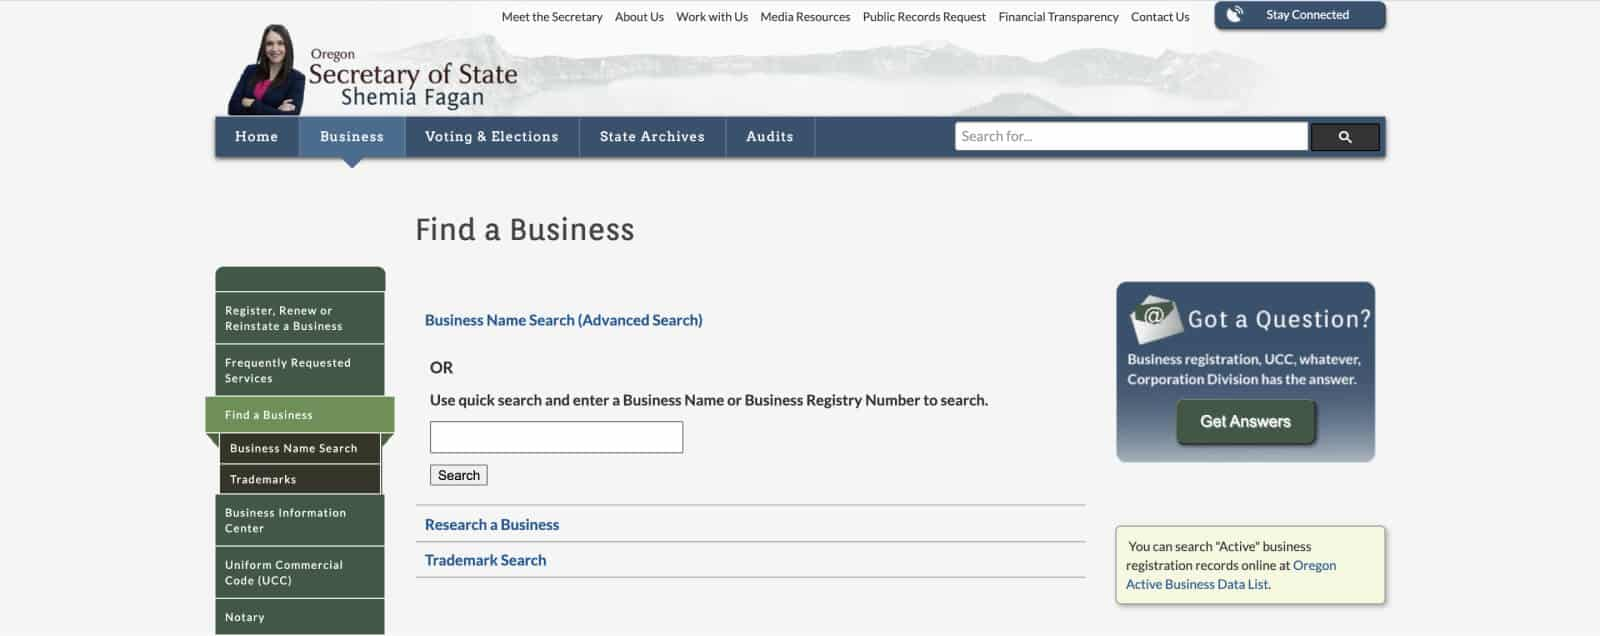 Oregon Secretary of State Business Name Search availability